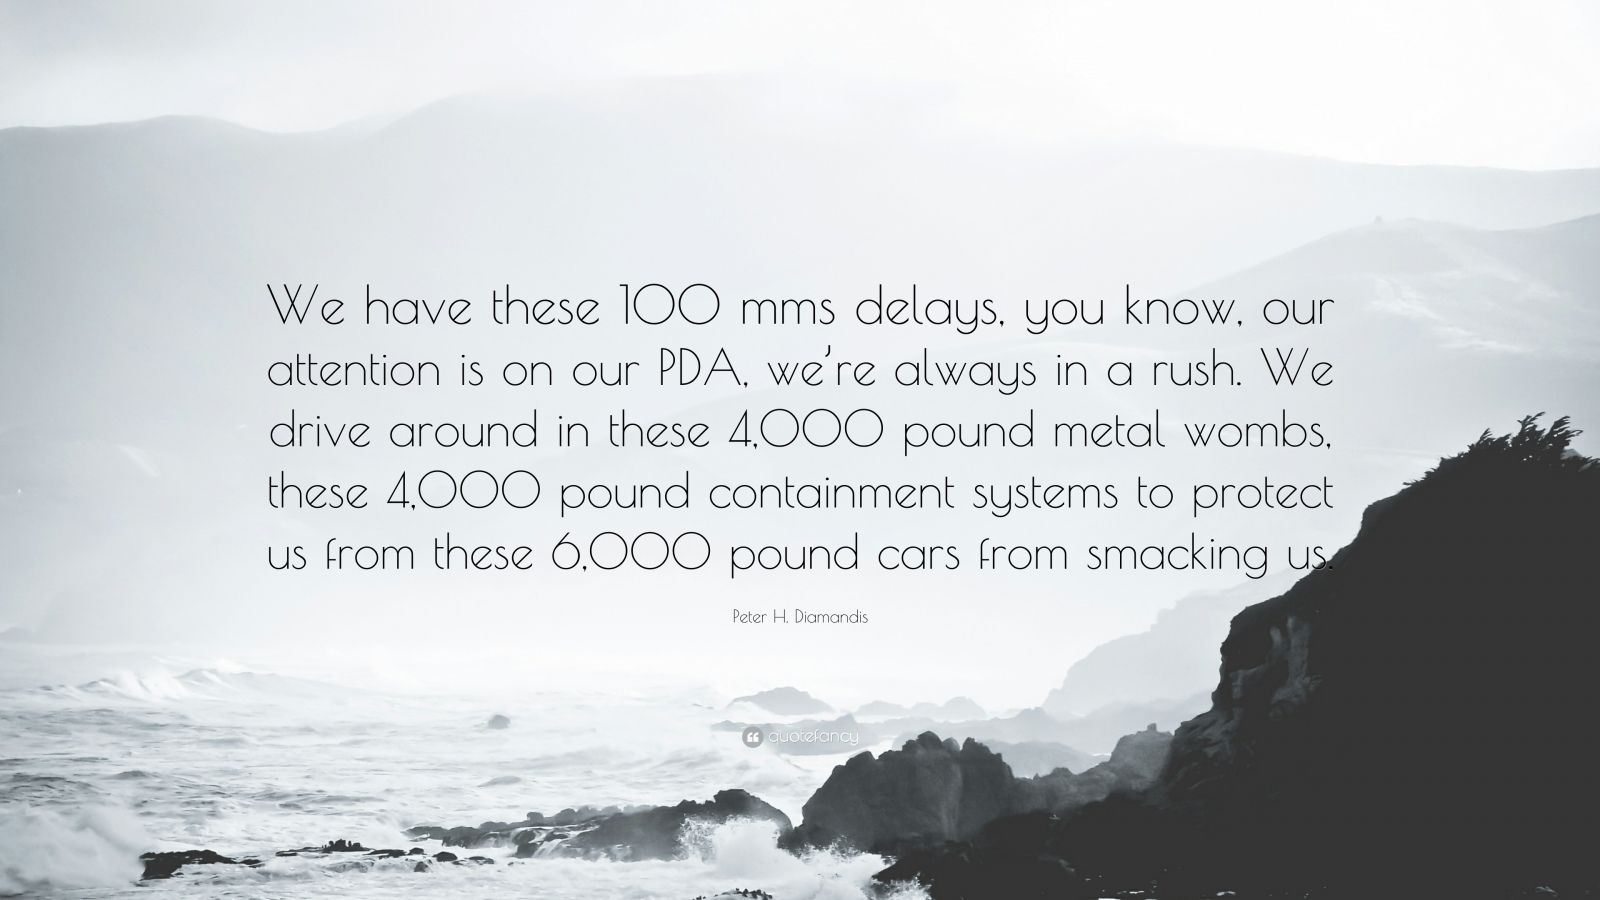 "Peter H. Diamandis Quote: ""We have these 100 mms delays, you know, our attention is on our PDA, we're always in a rush. We drive around in these 4,000 pound metal wombs, these 4,000 pound containment systems to protect us from these 6,000 pound cars from smacking us."""